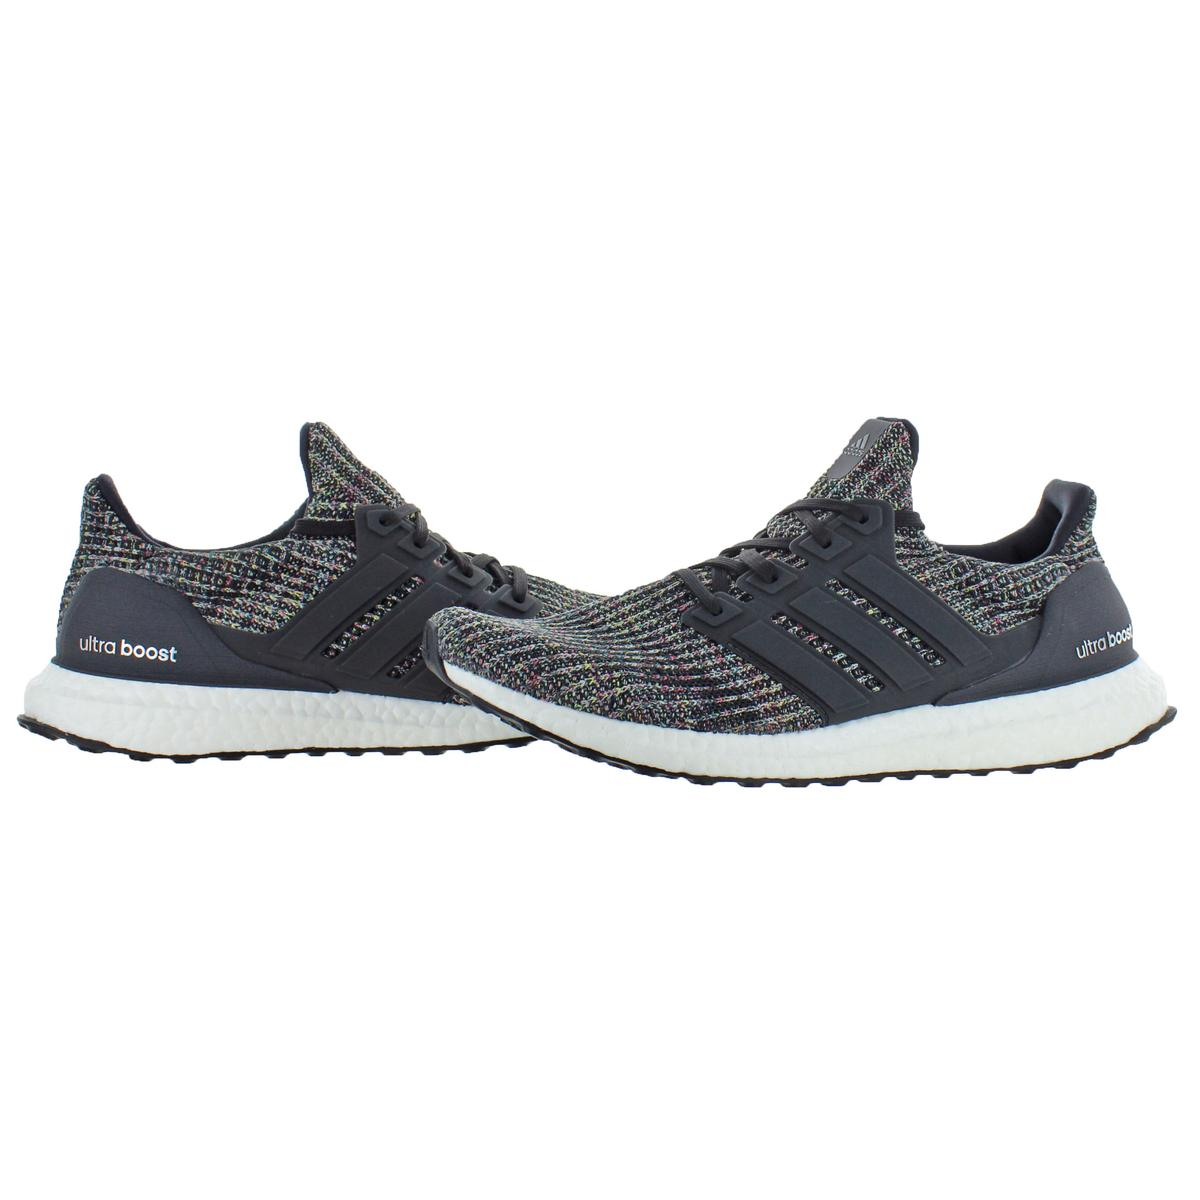 95215806368 BHFO  Adidas Men s UltraBoost Primeknit Running Shoes Sneakers ...